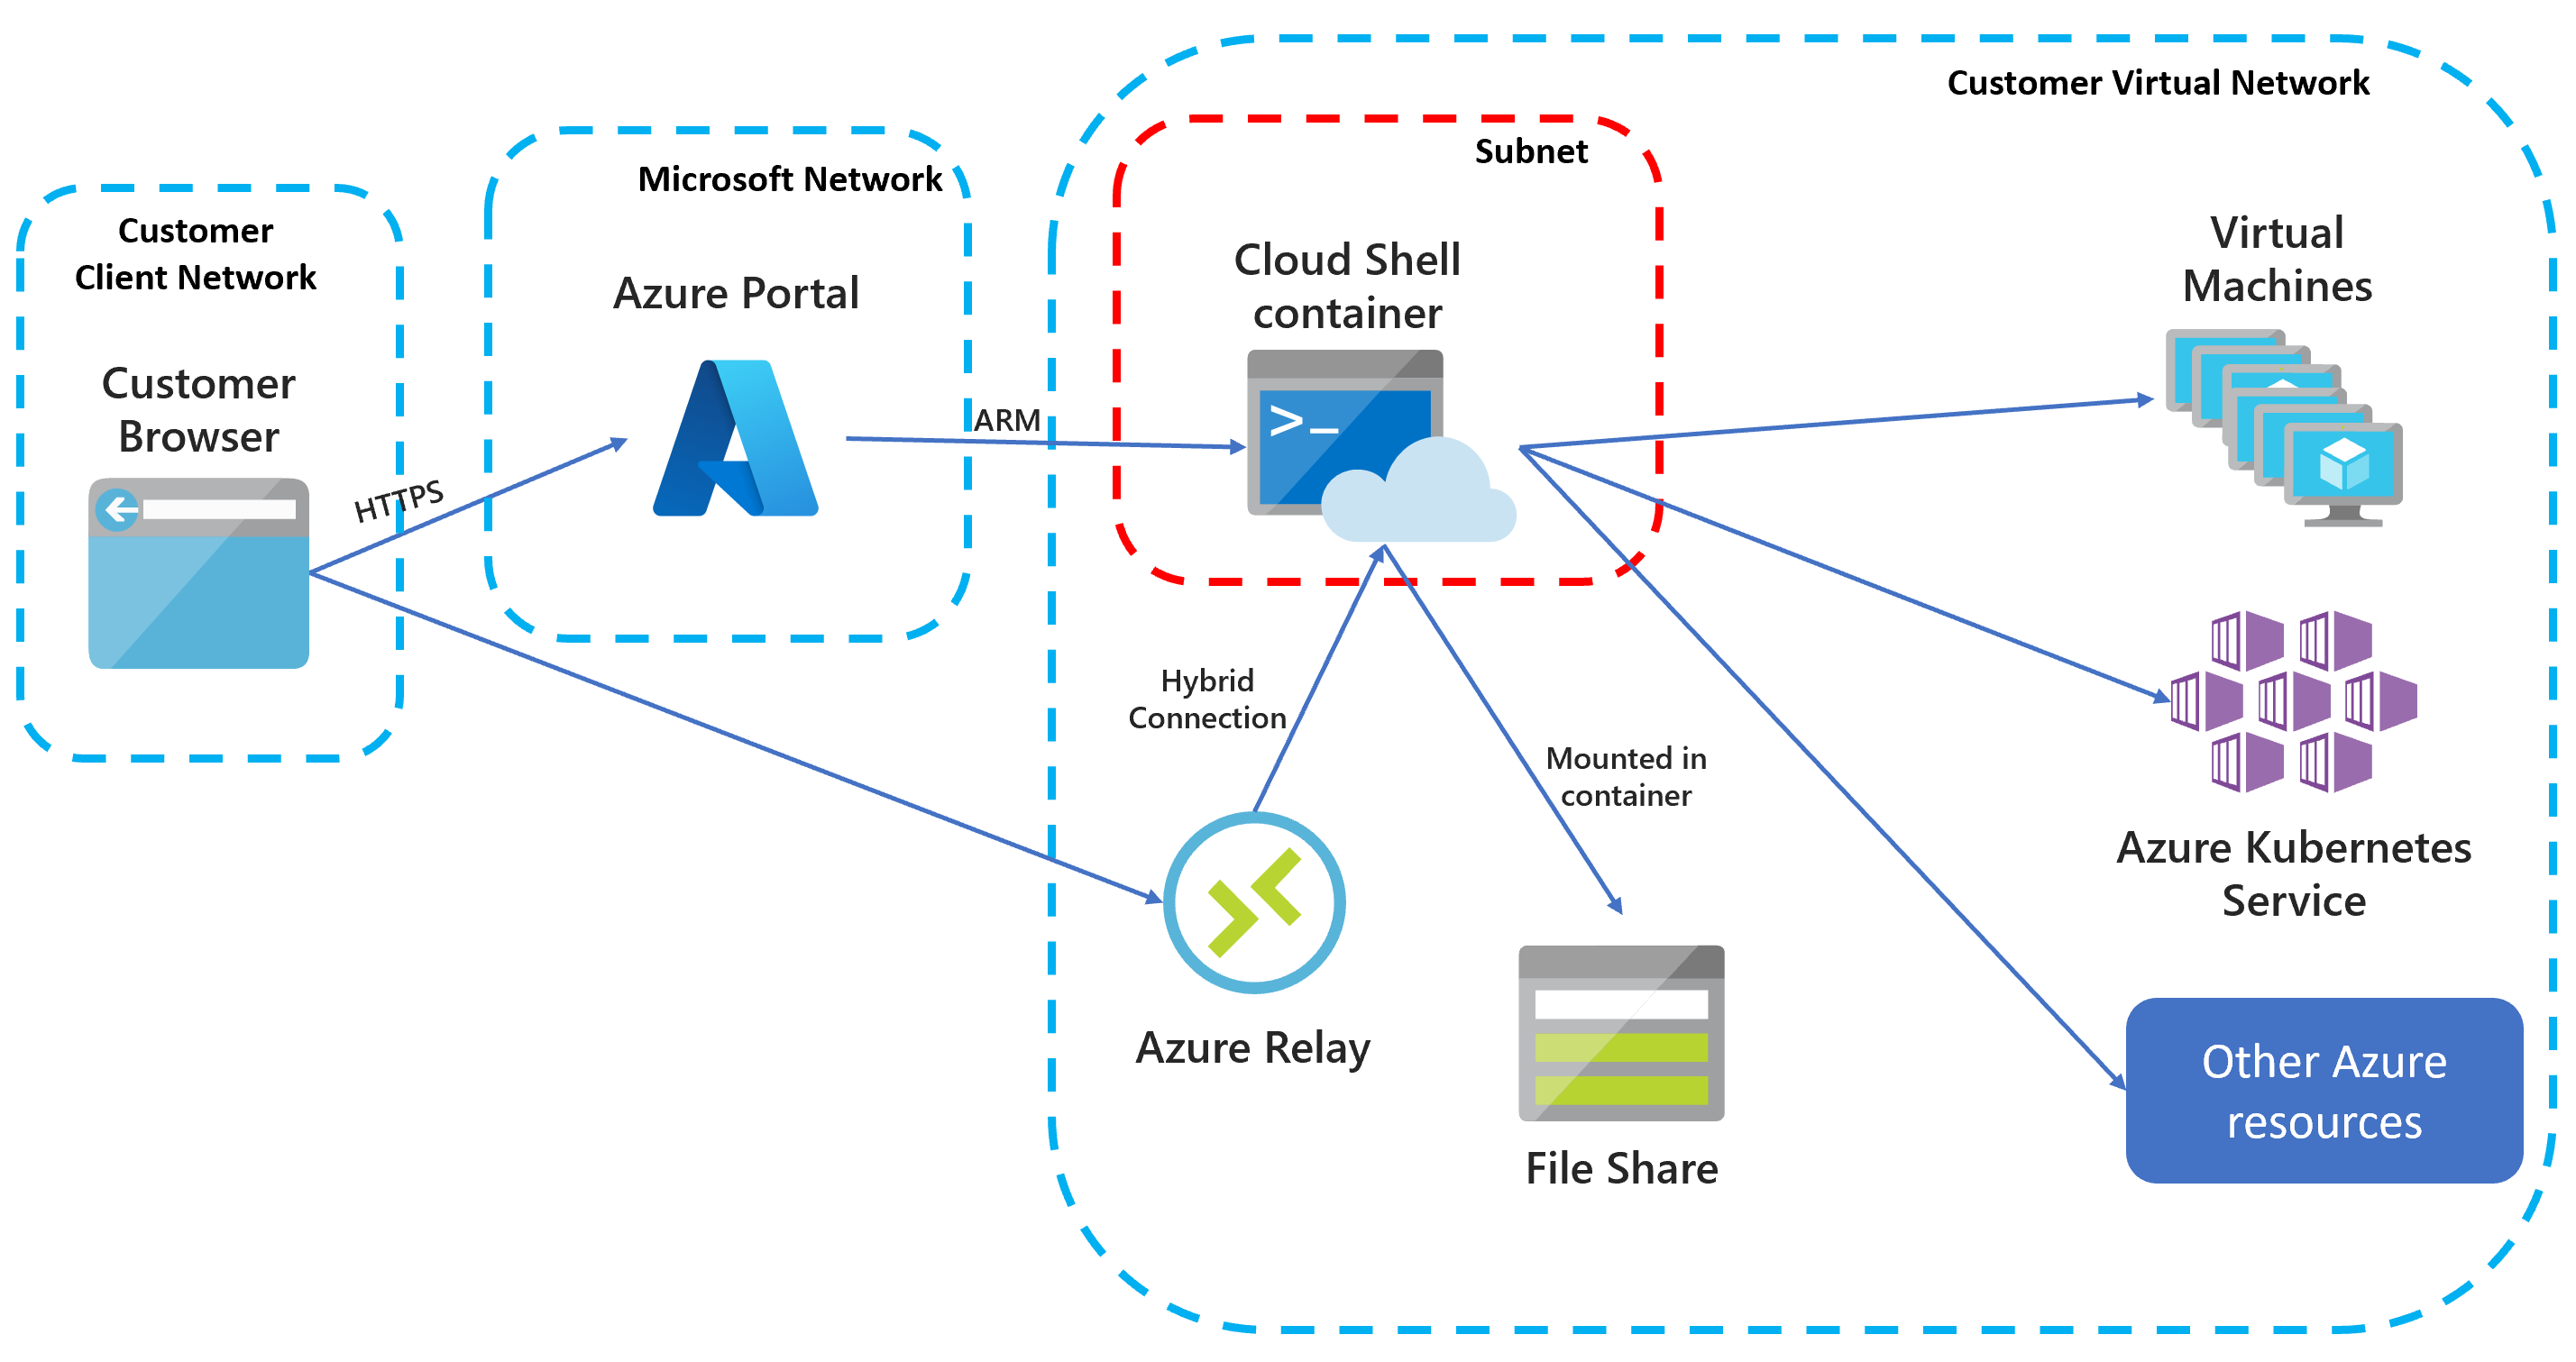 Cloud Shell in an Azure Virtual Network Architecture Diagram